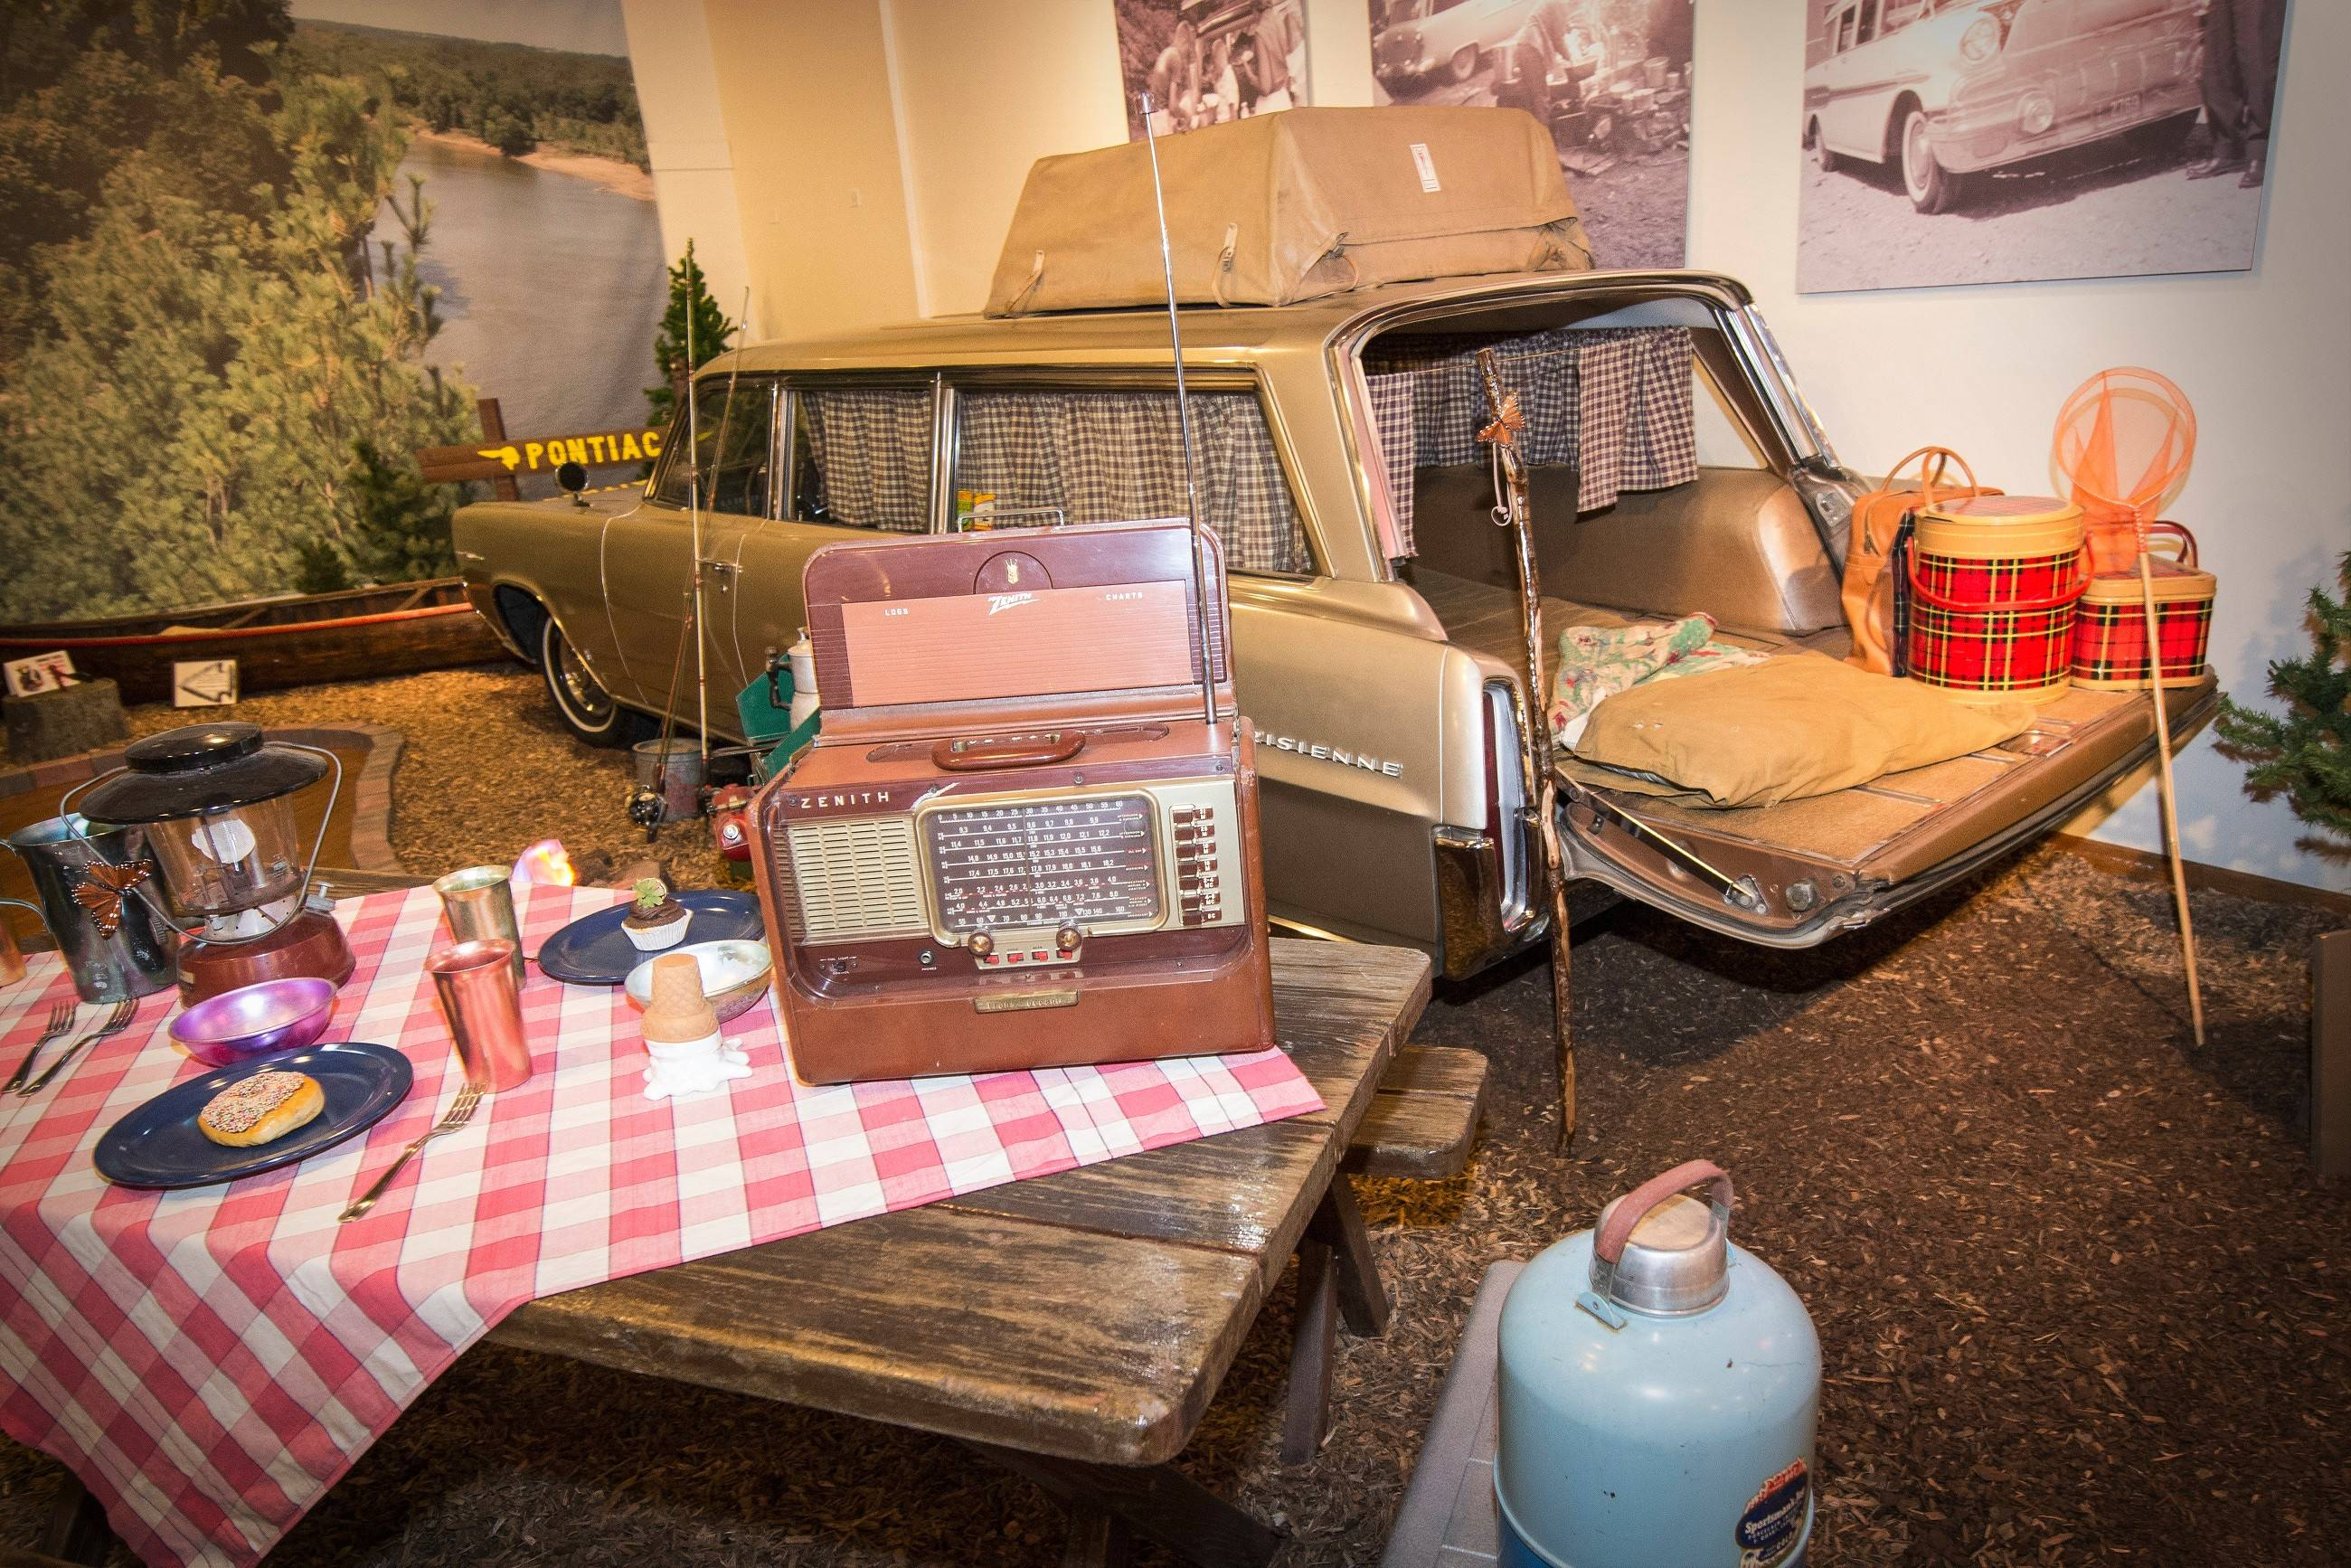 A rare 1964 Pontiac Parisienne Safari station wagon is one of the museum's treasures.